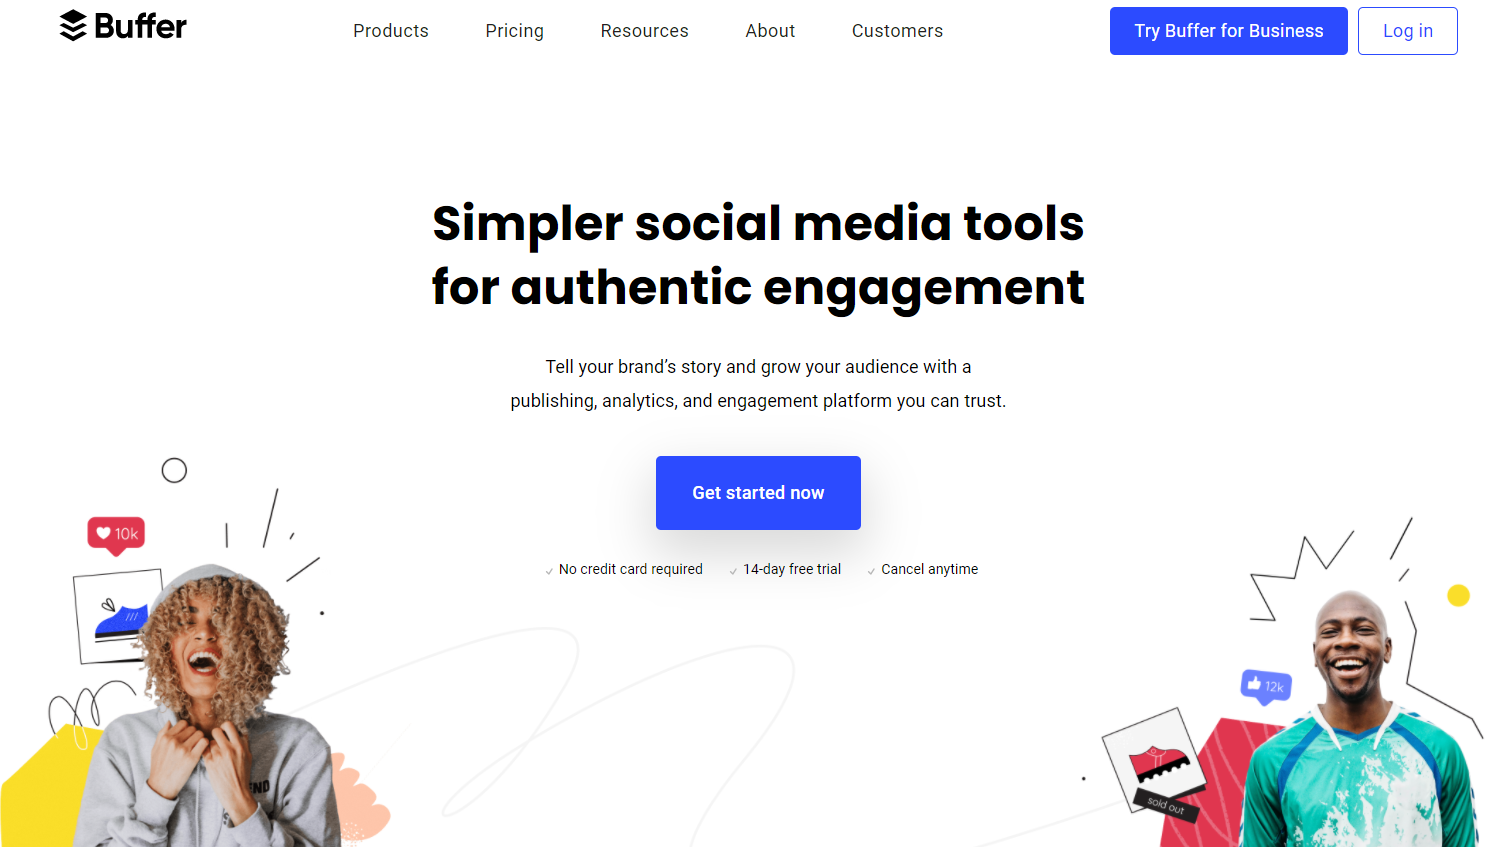 15 Best Digital Marketing Tools to Grow Your Business 11